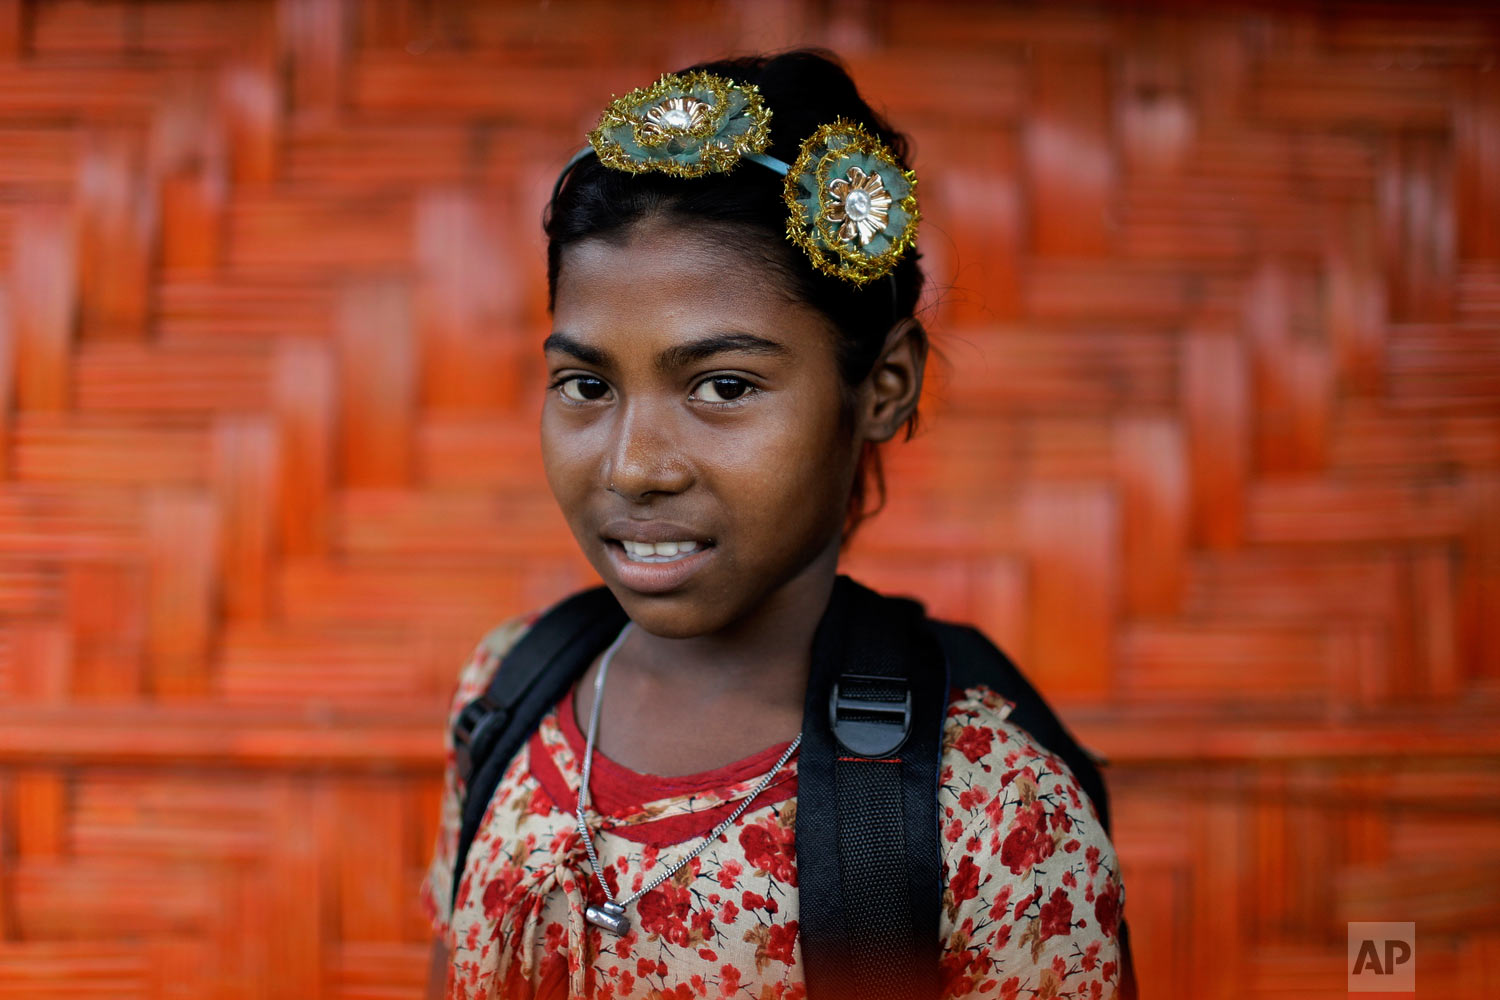 Zesmin, 10, poses for a portrait in front of her classroom on June 27, 2018, in Chakmarkul refugee camp, Bangladesh. (AP Photo/Wong Maye-E)